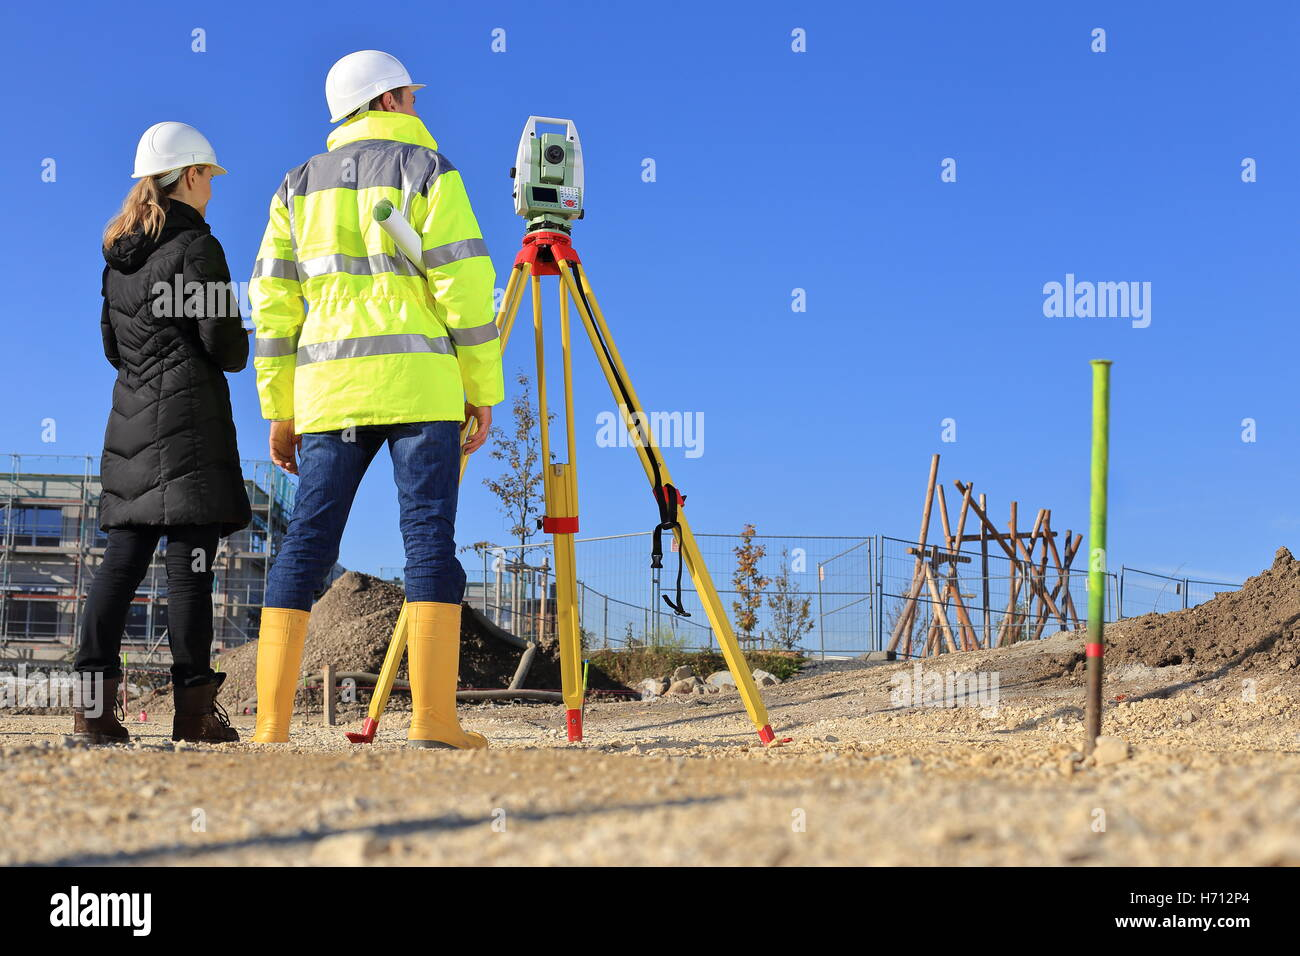 A Architect and surveyor on a construction site back sight - Stock Image